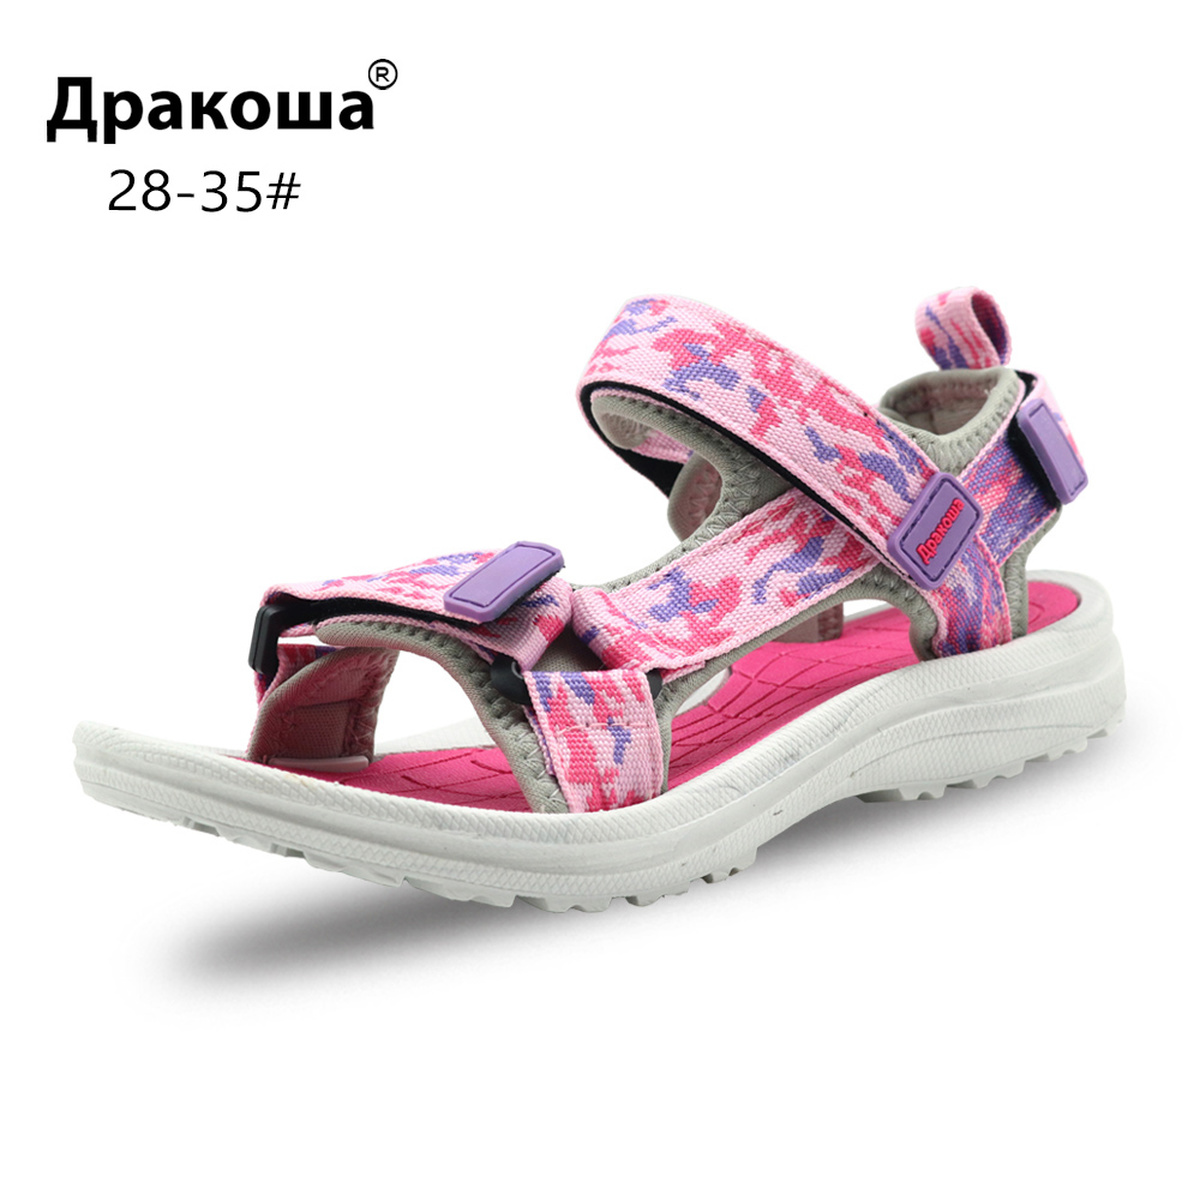 Apakowa Summer Sandals Open Toe Wedge Heel Girl Sandals Hook&Loop Quick Dry Toddler Beach Sandals For Children's Shoes